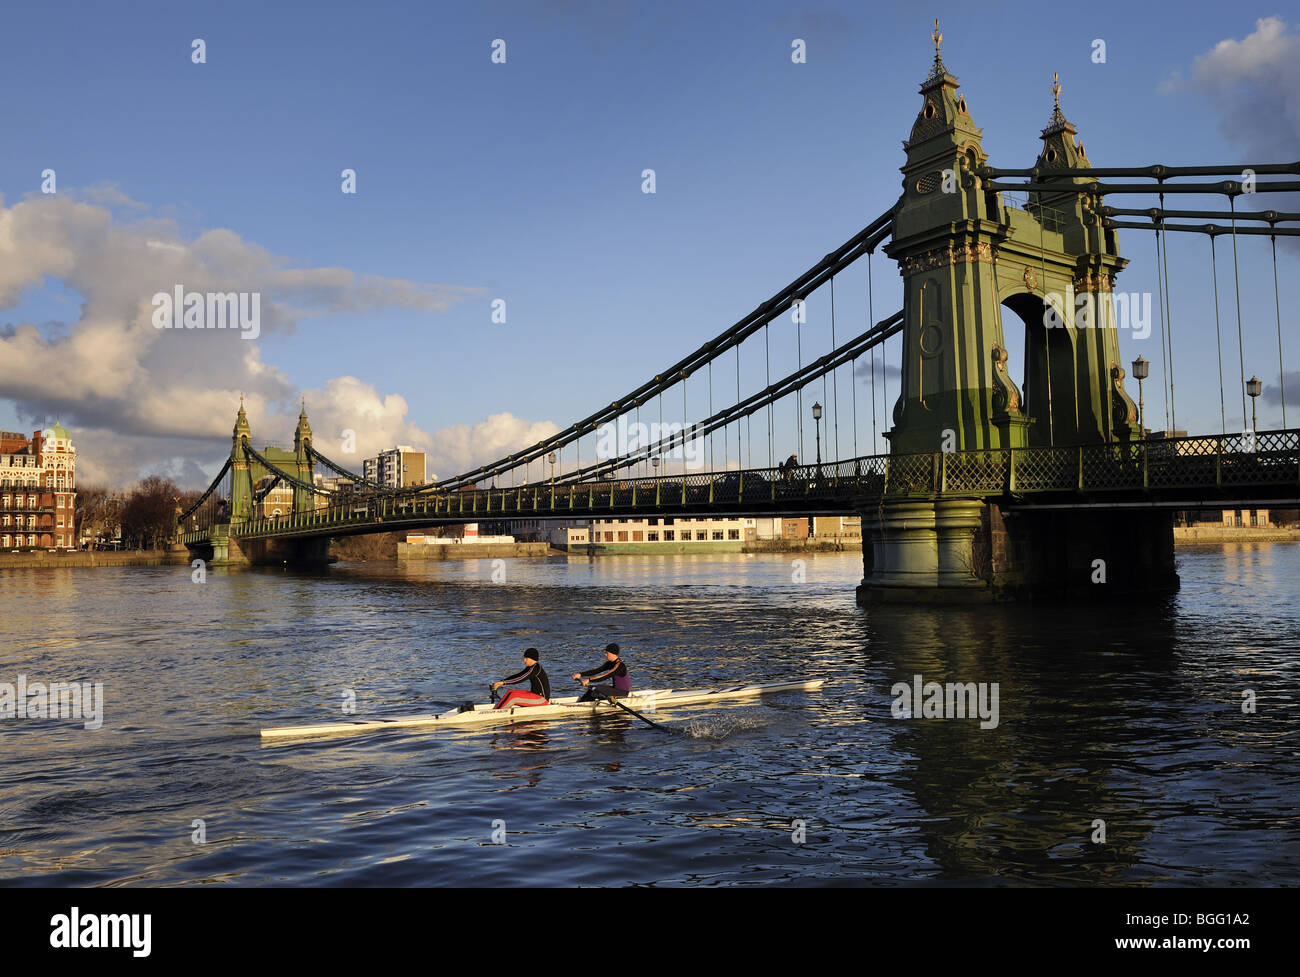 Rowers passing under Hammersmith suspension Bridge, River Thames, London, on a Winter's day - Stock Image